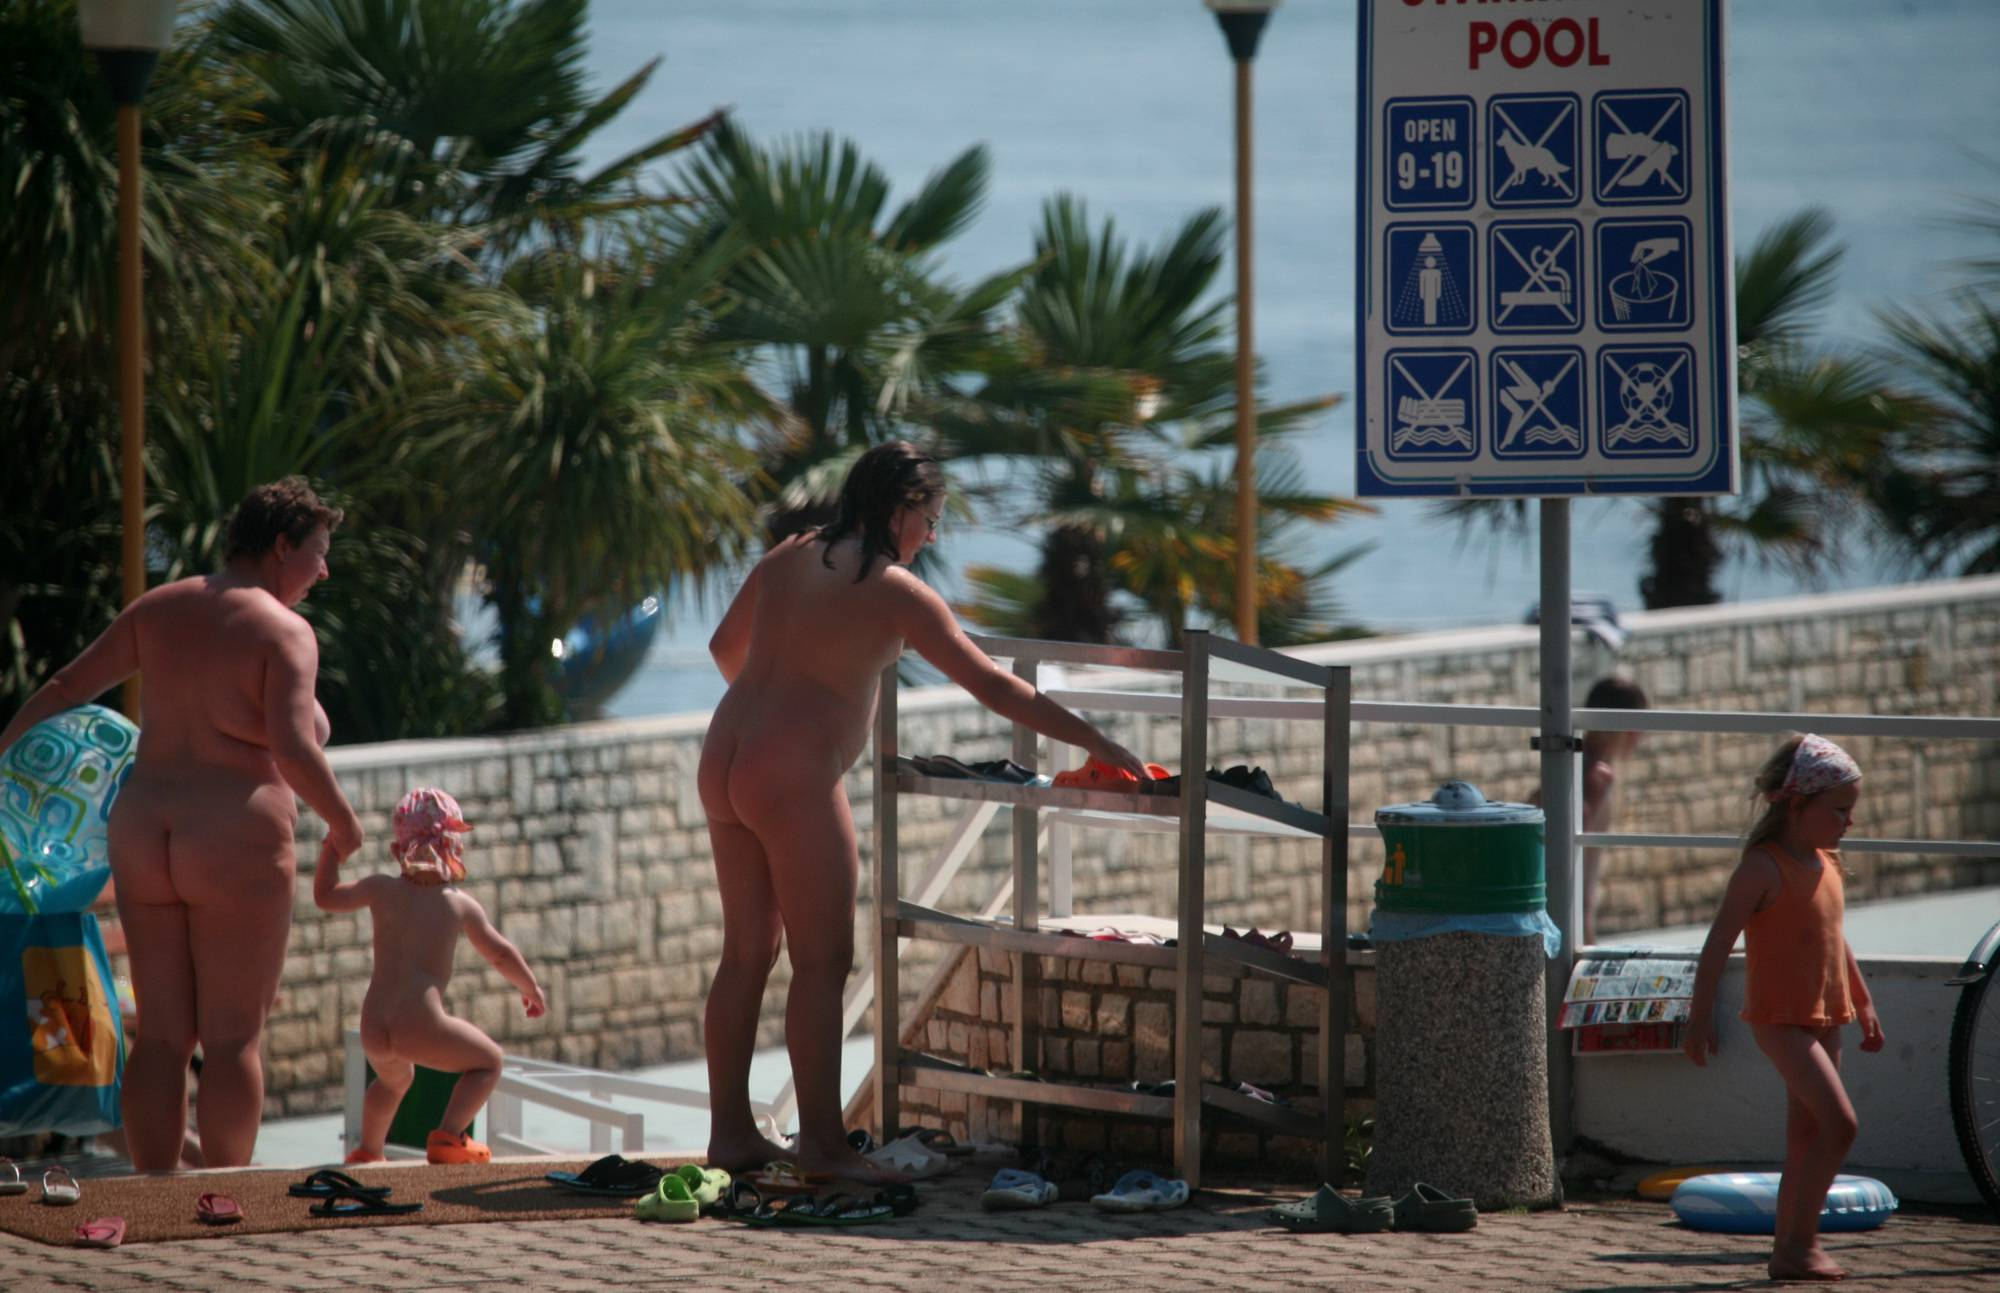 Purenudism Images-Pool Outskirt Nude Guests - 1